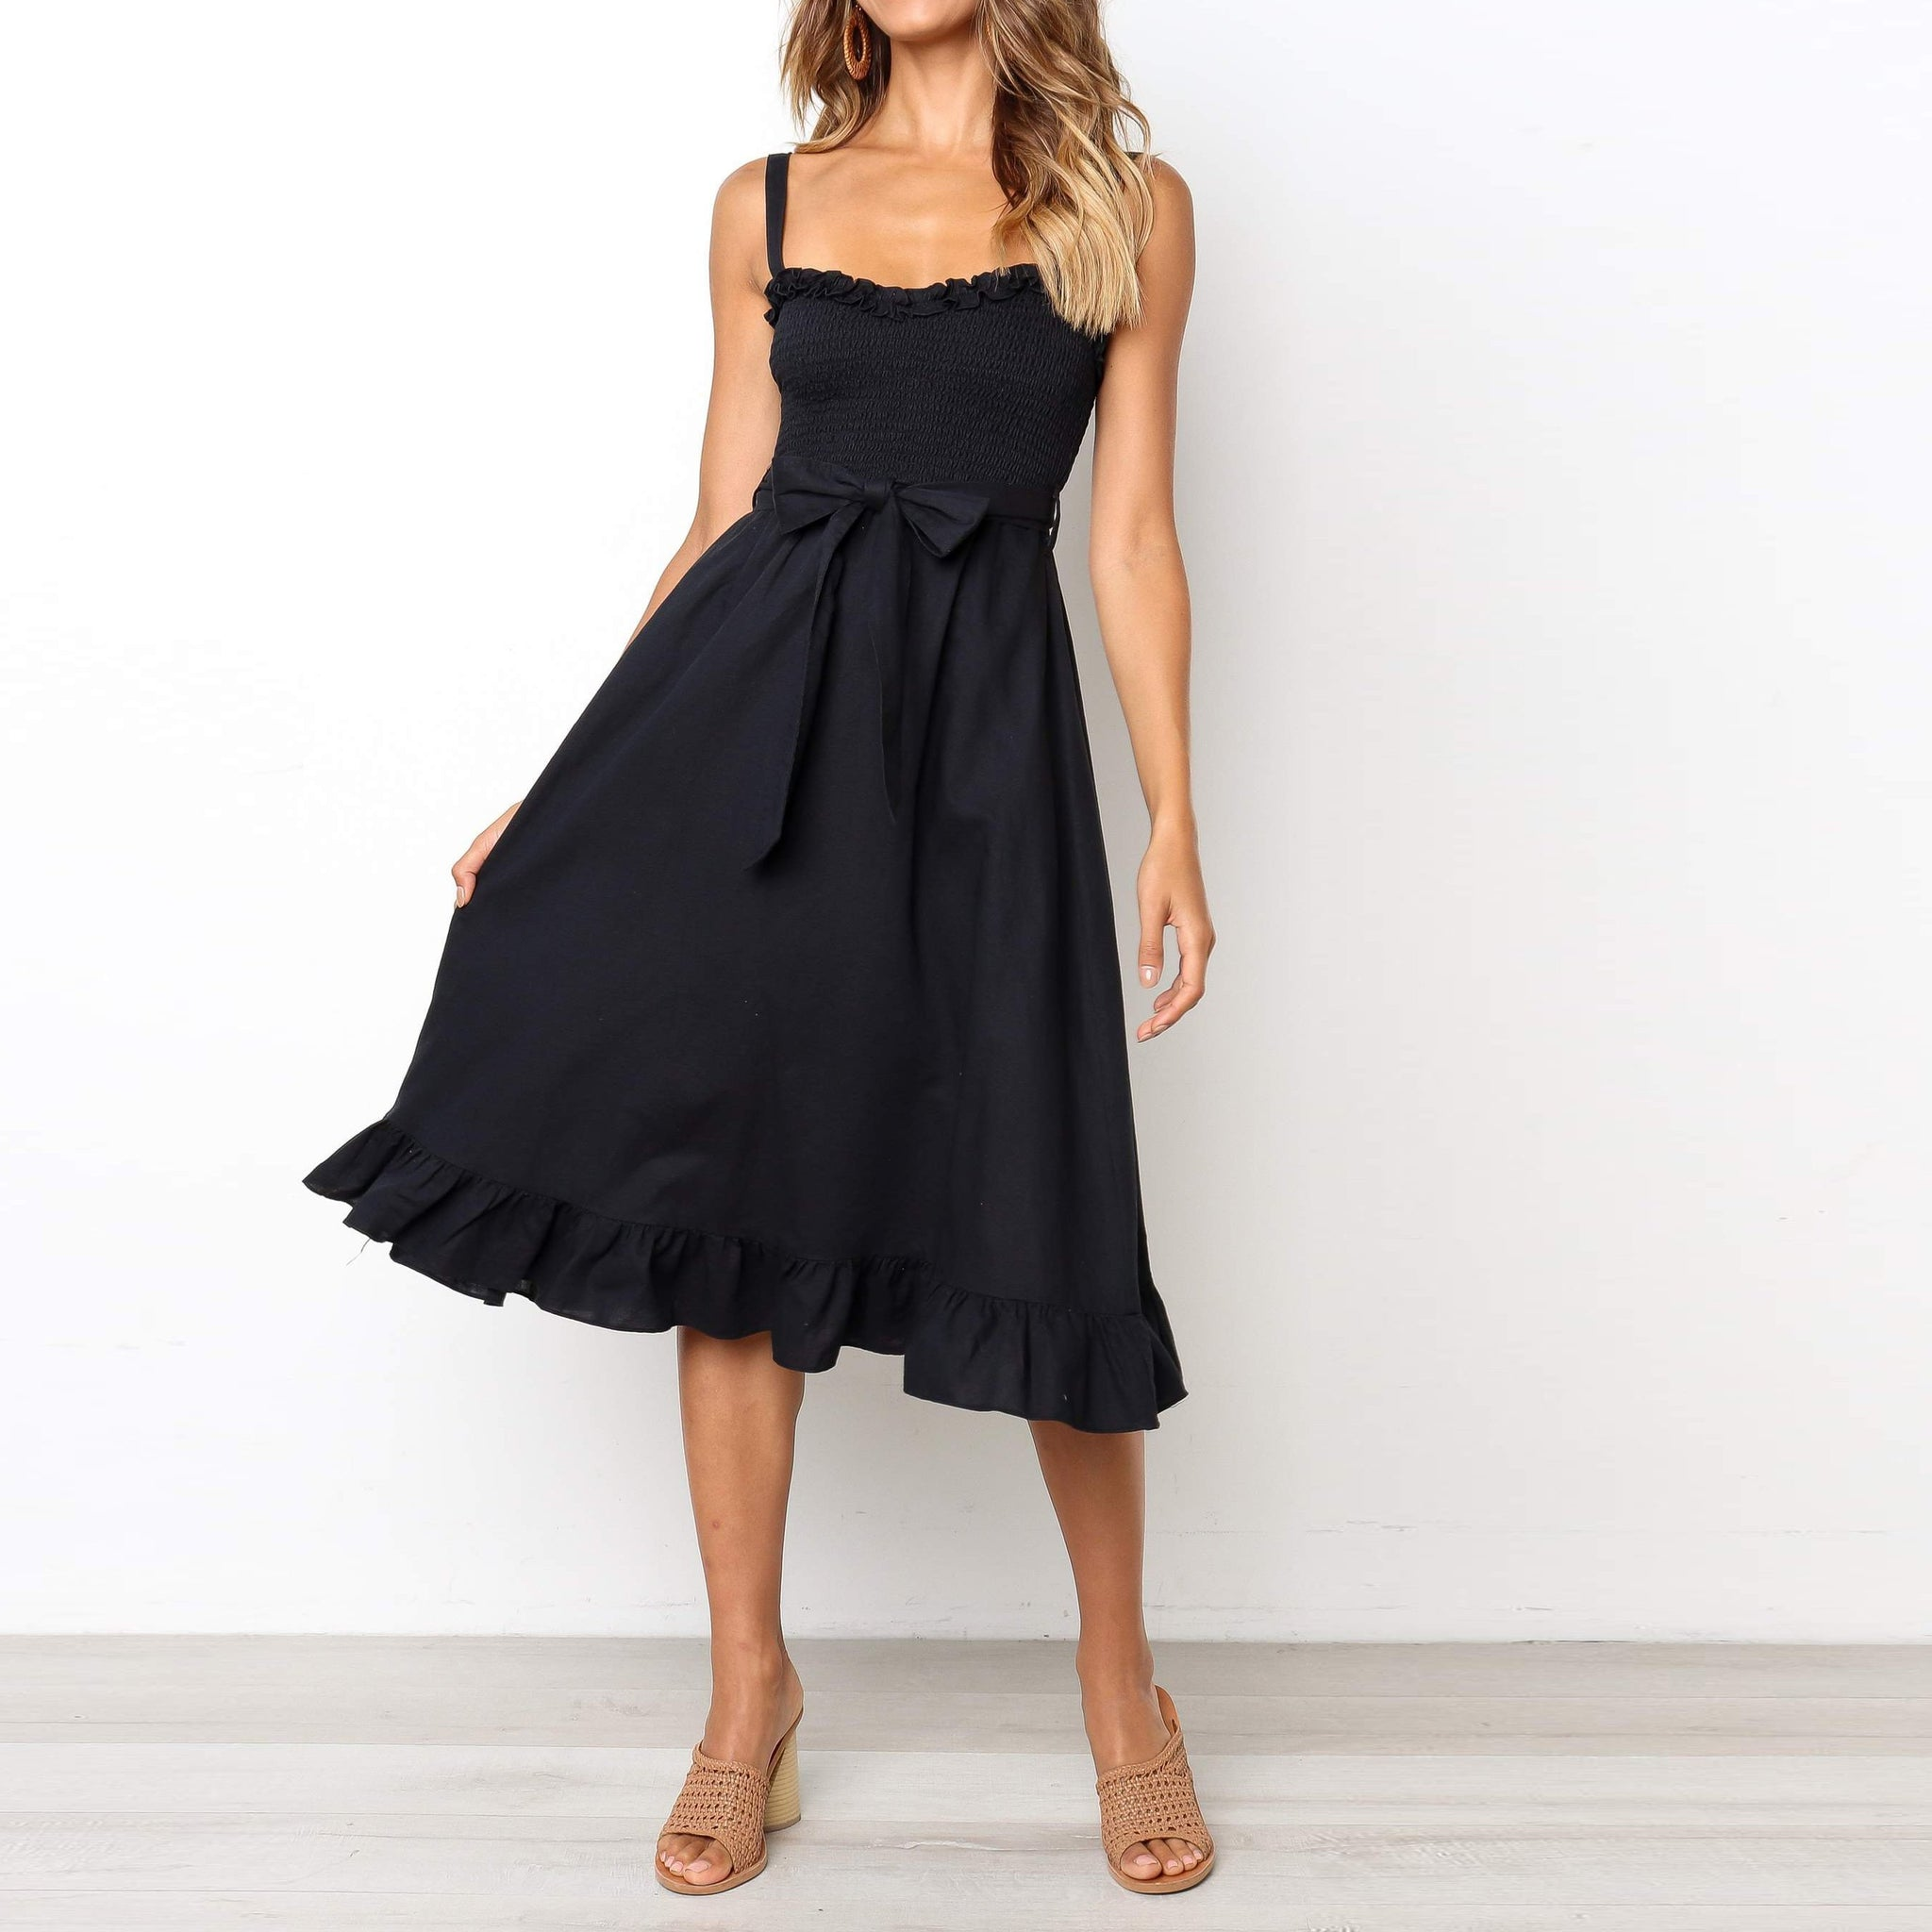 b2a0939a392 2019 Sexy Wrapped Chest Sling Strap Waist Bow Skater Dress – Zillalike